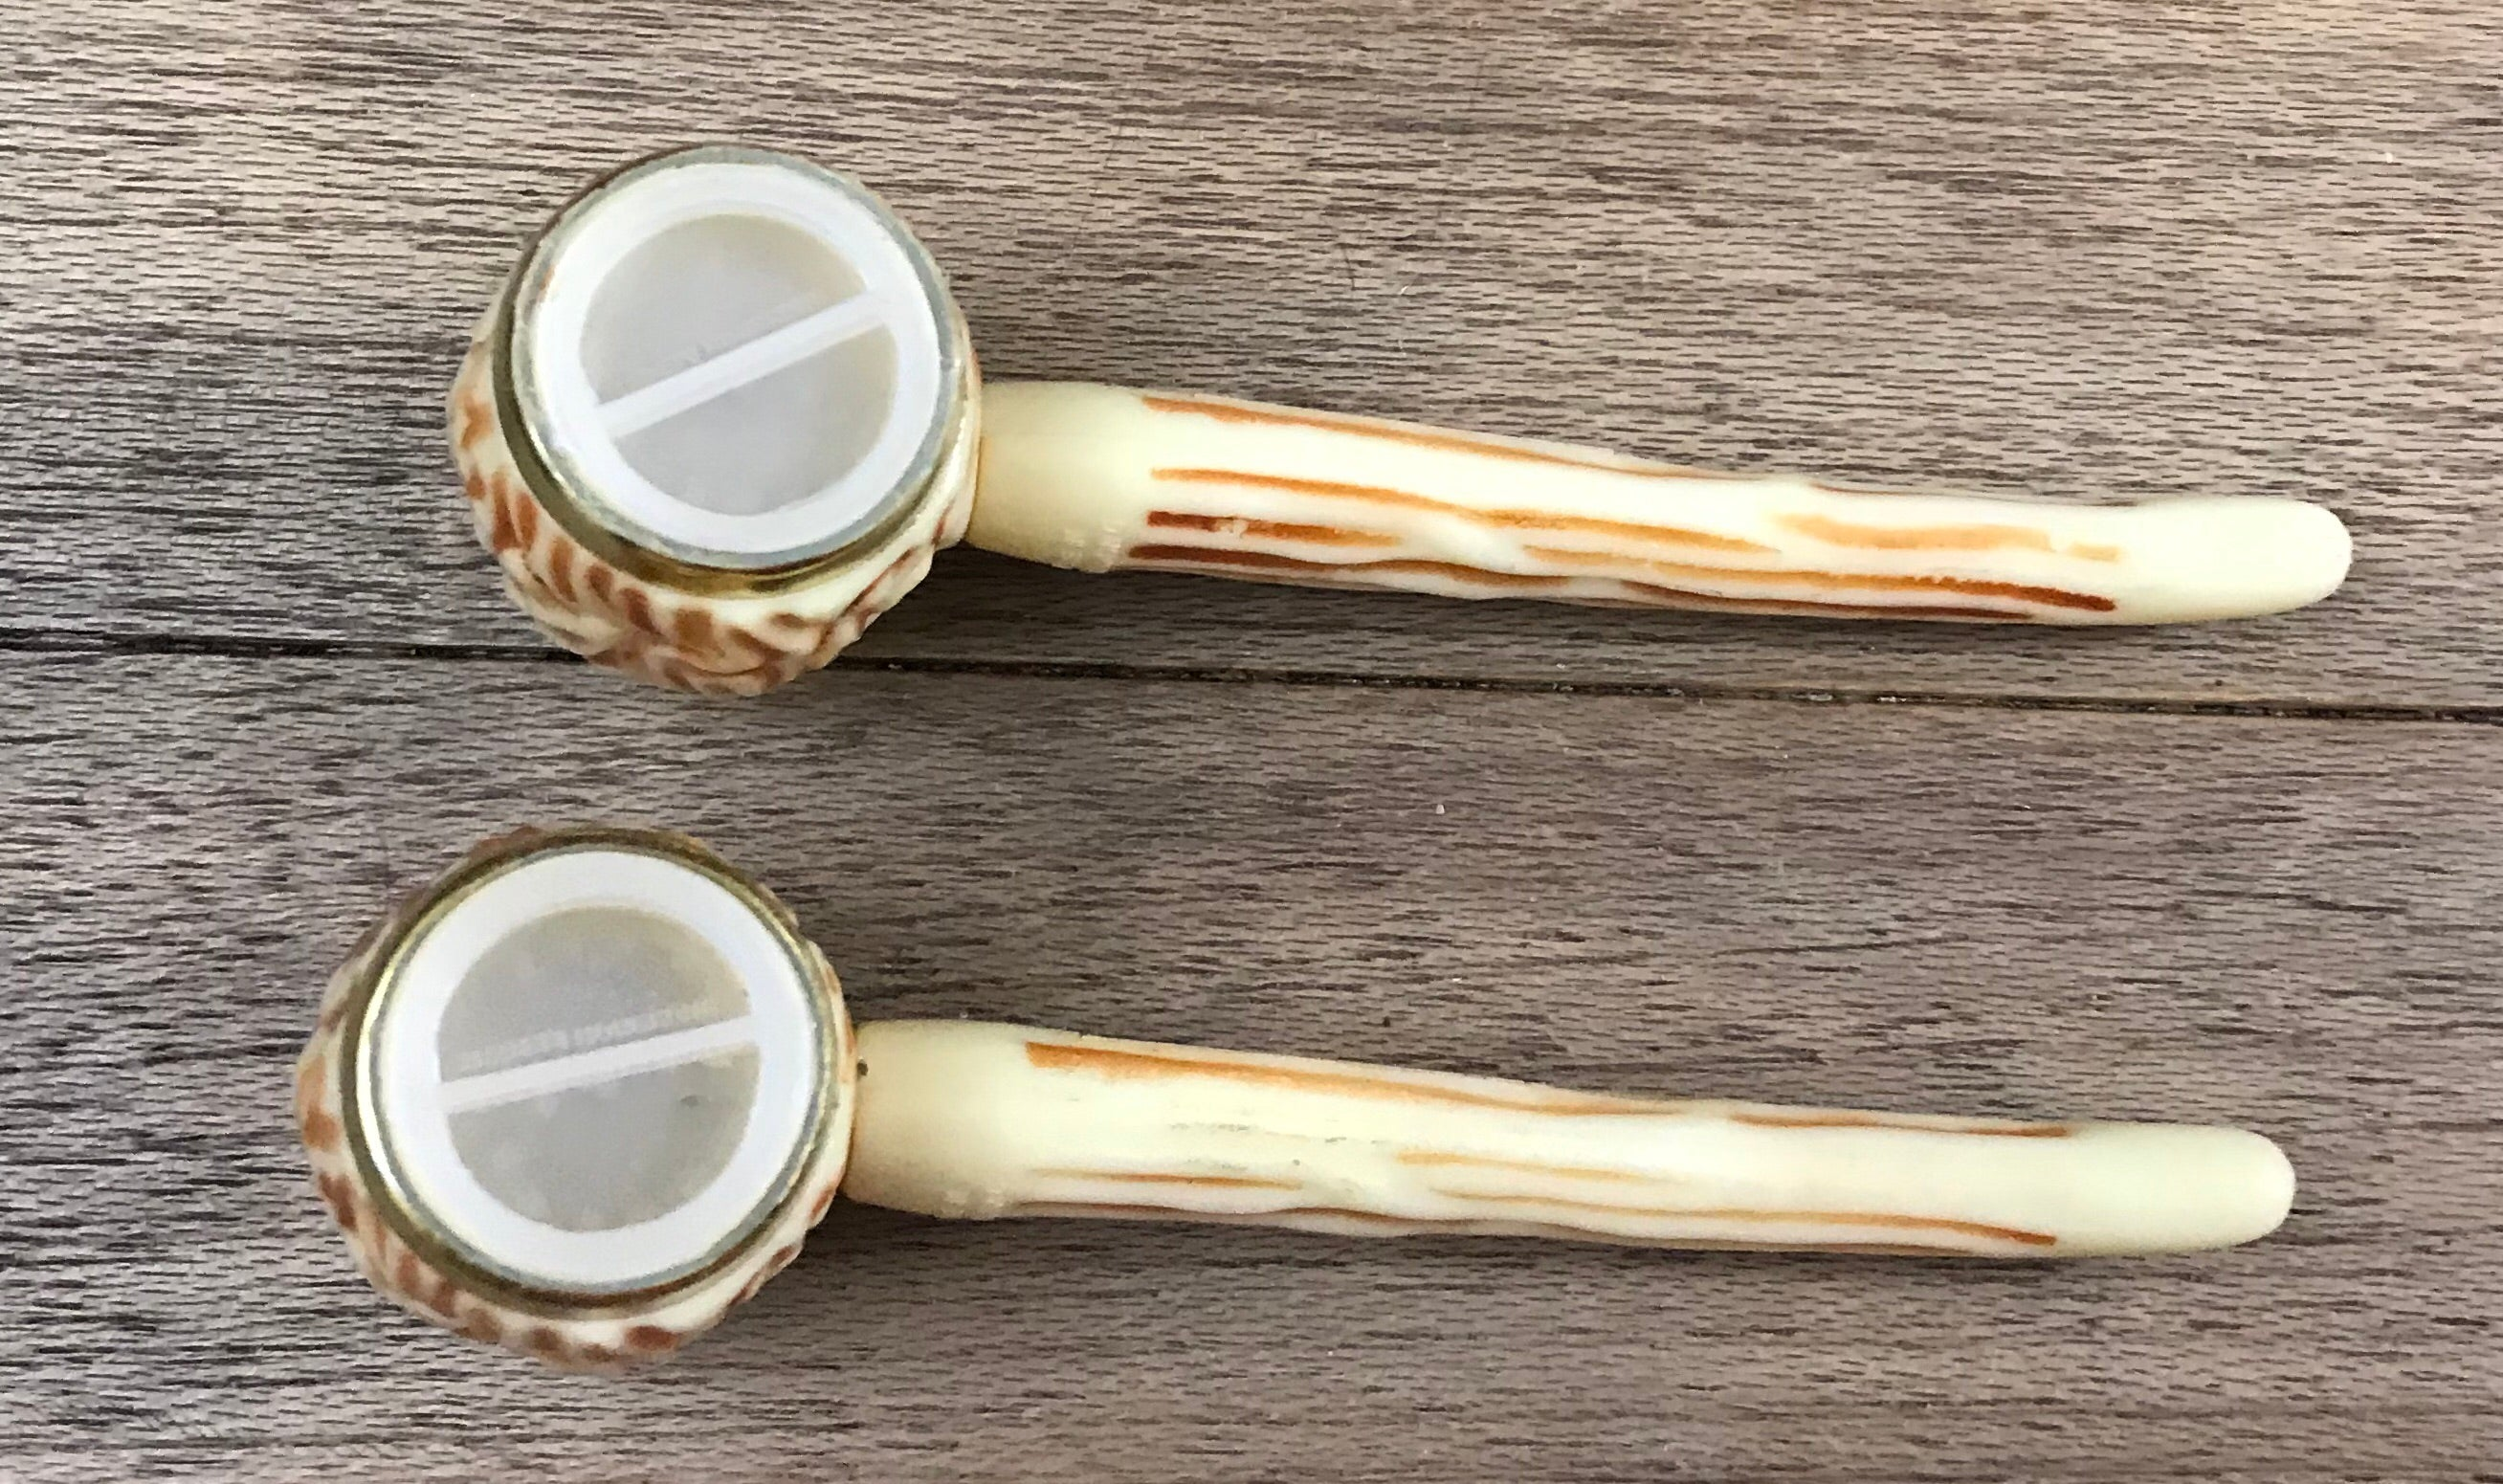 "Vintage Plastic Corn Cob Style Tobacco Smoking Pipe Salt & Pepper Shaker with a faux cow bone/antler Details ""Las Vegas"" Souvenir- 1950's"